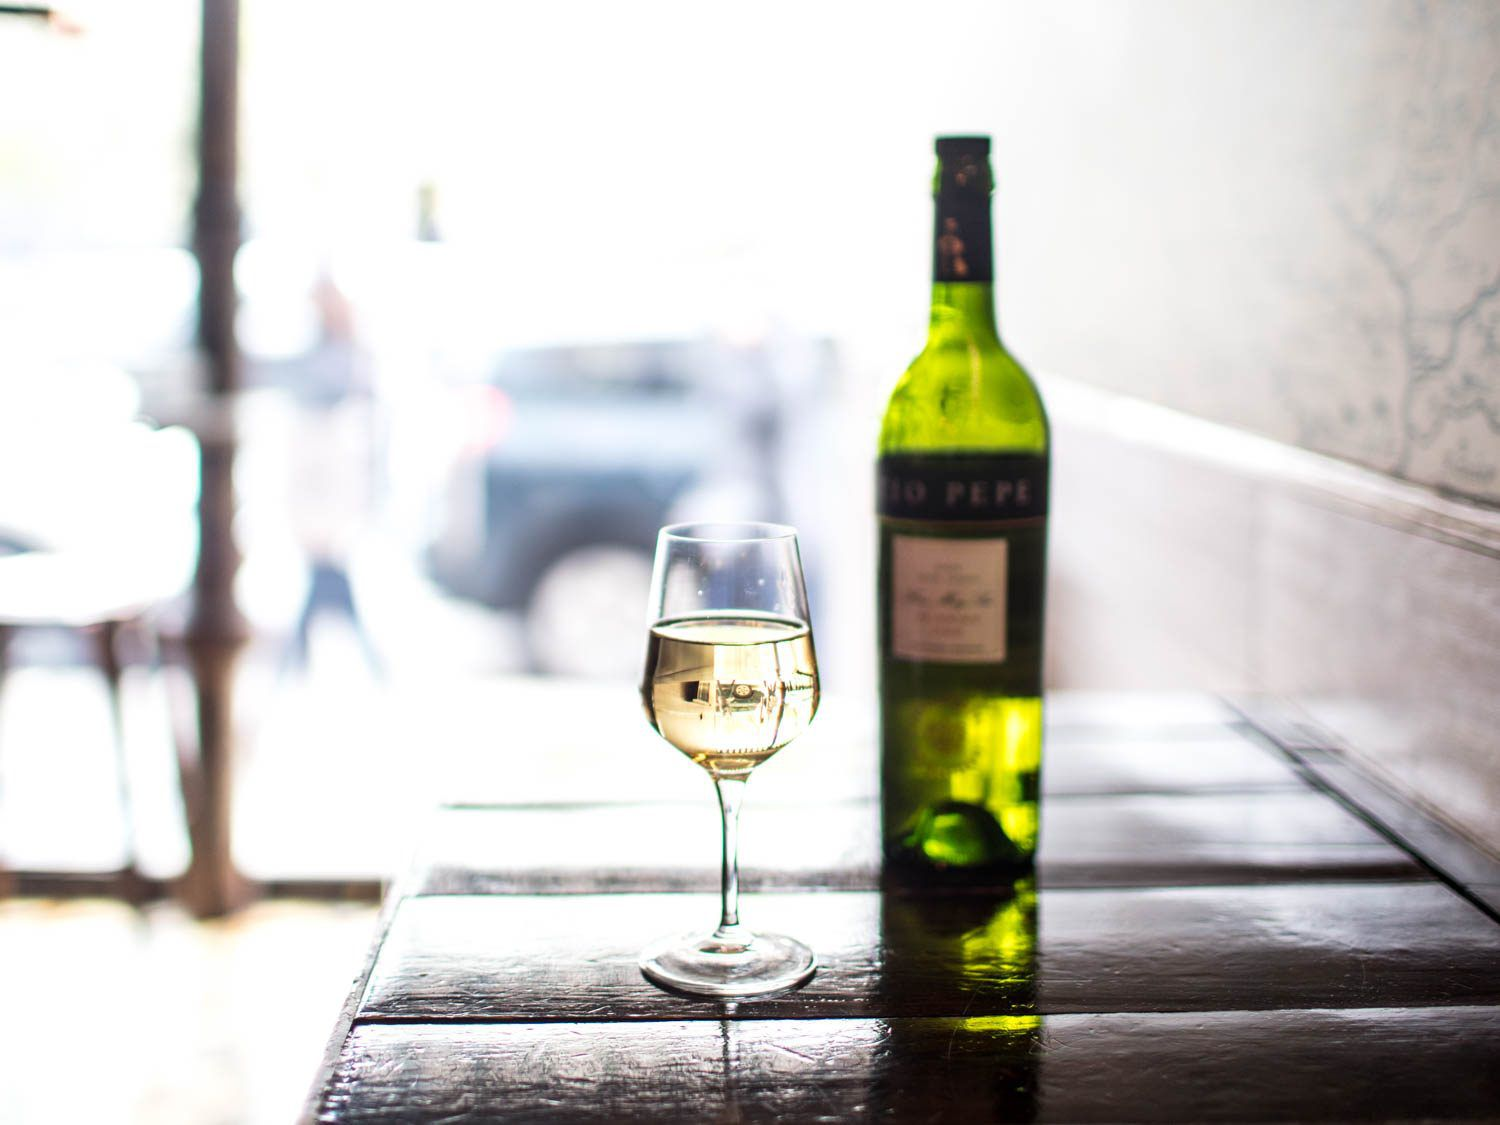 A wineglass of light-colored Fino sherry, with a bottle in the background